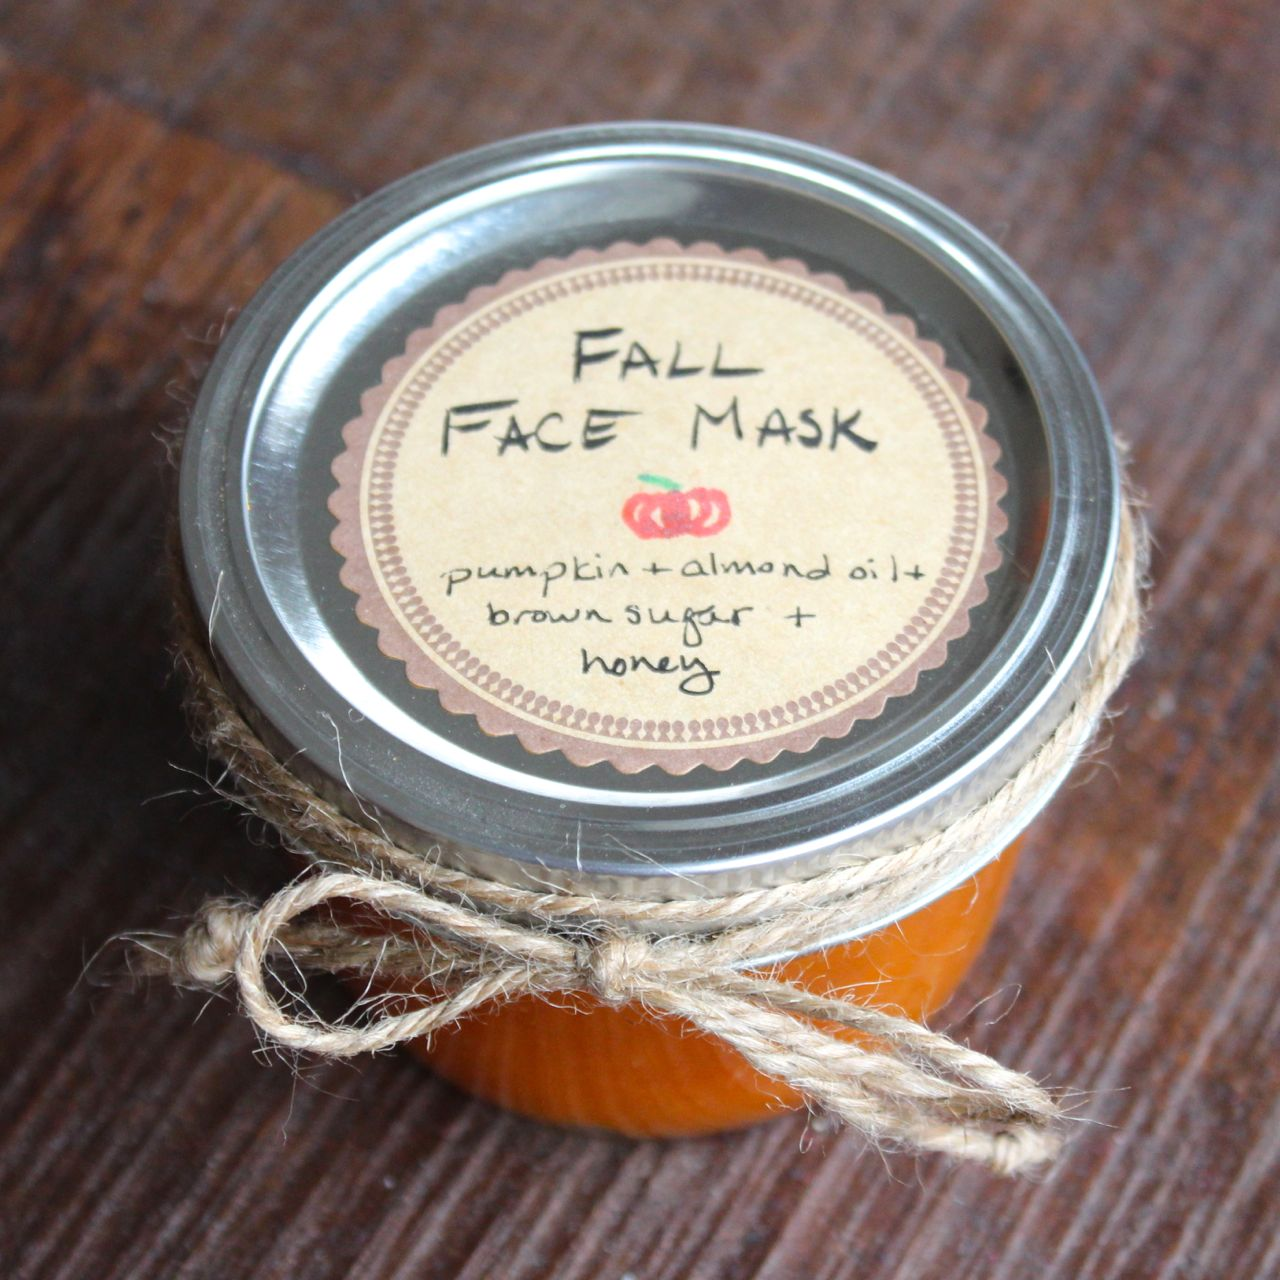 fall face mask